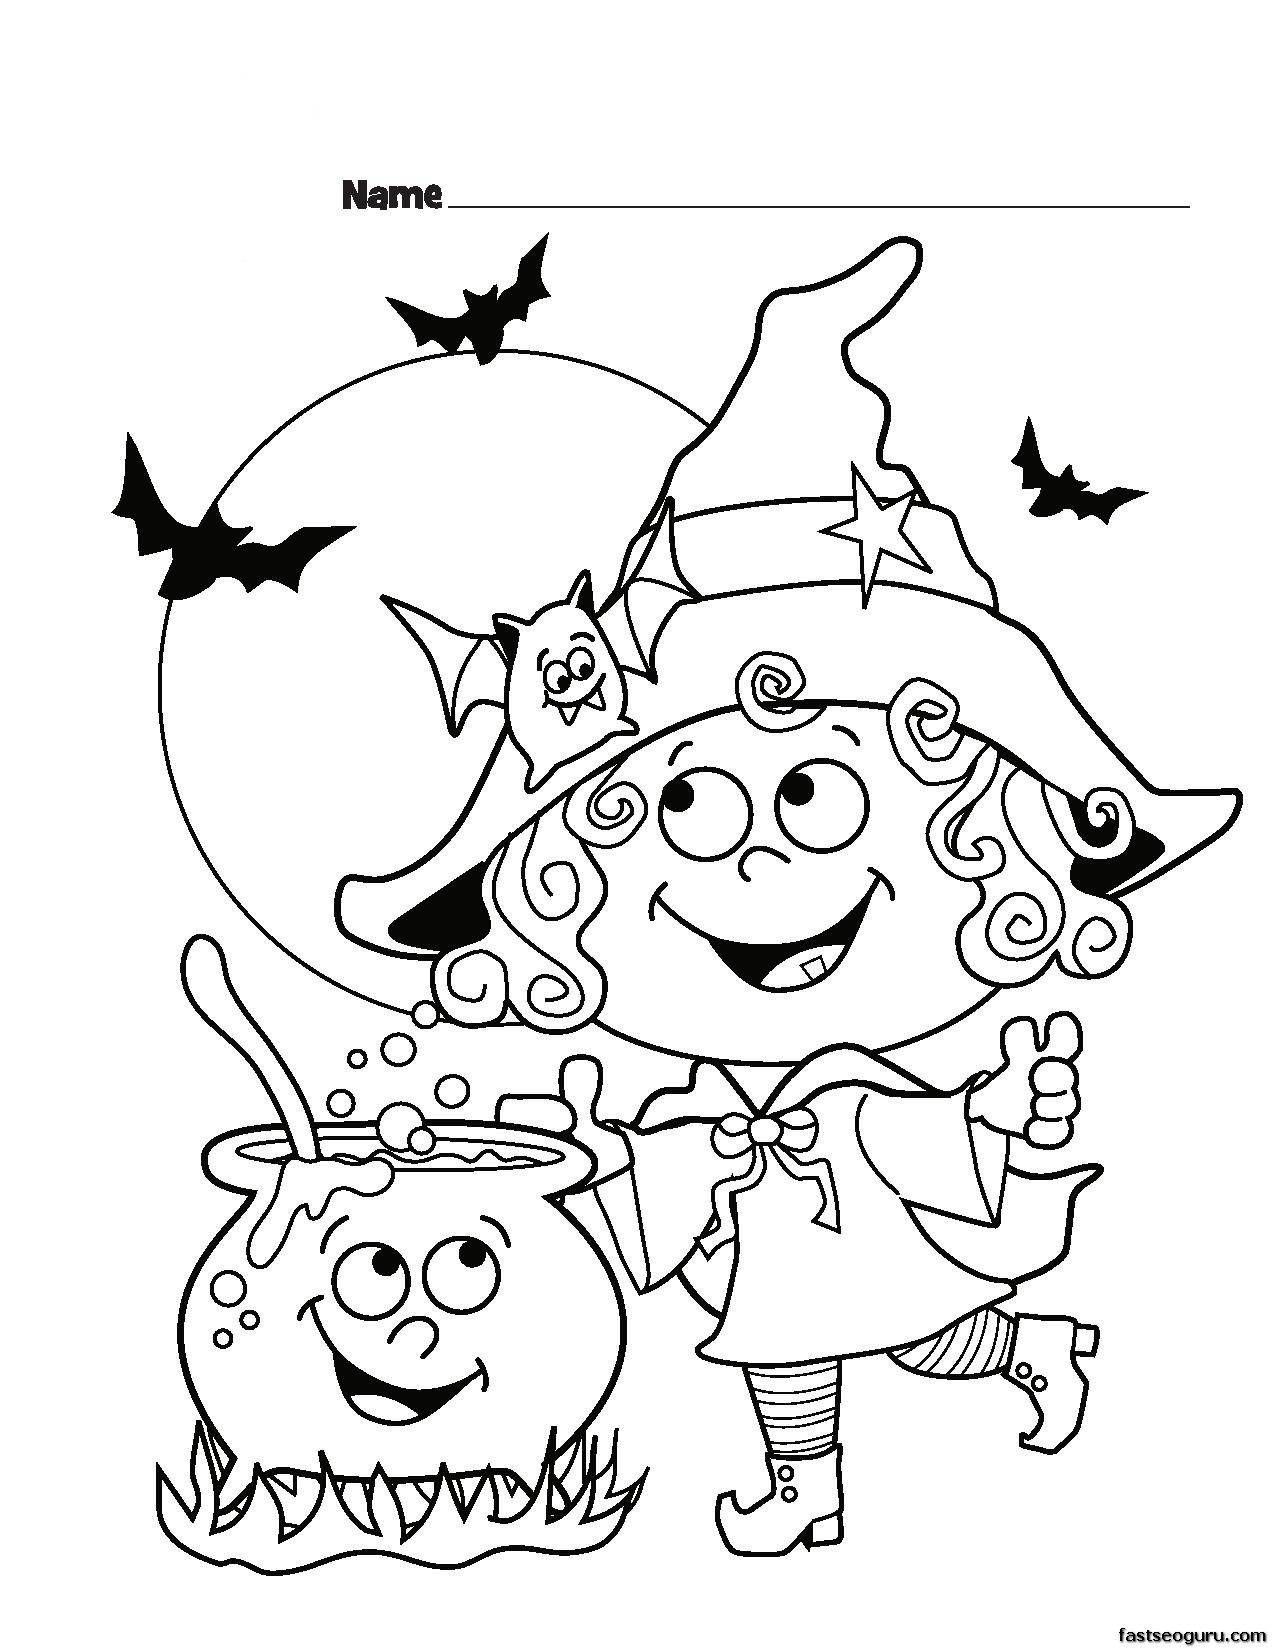 Free Halloween Coloring Pages Coloring Page Halloween Coloring Sheets Free Halloween Coloring Pages Halloween Coloring Pages